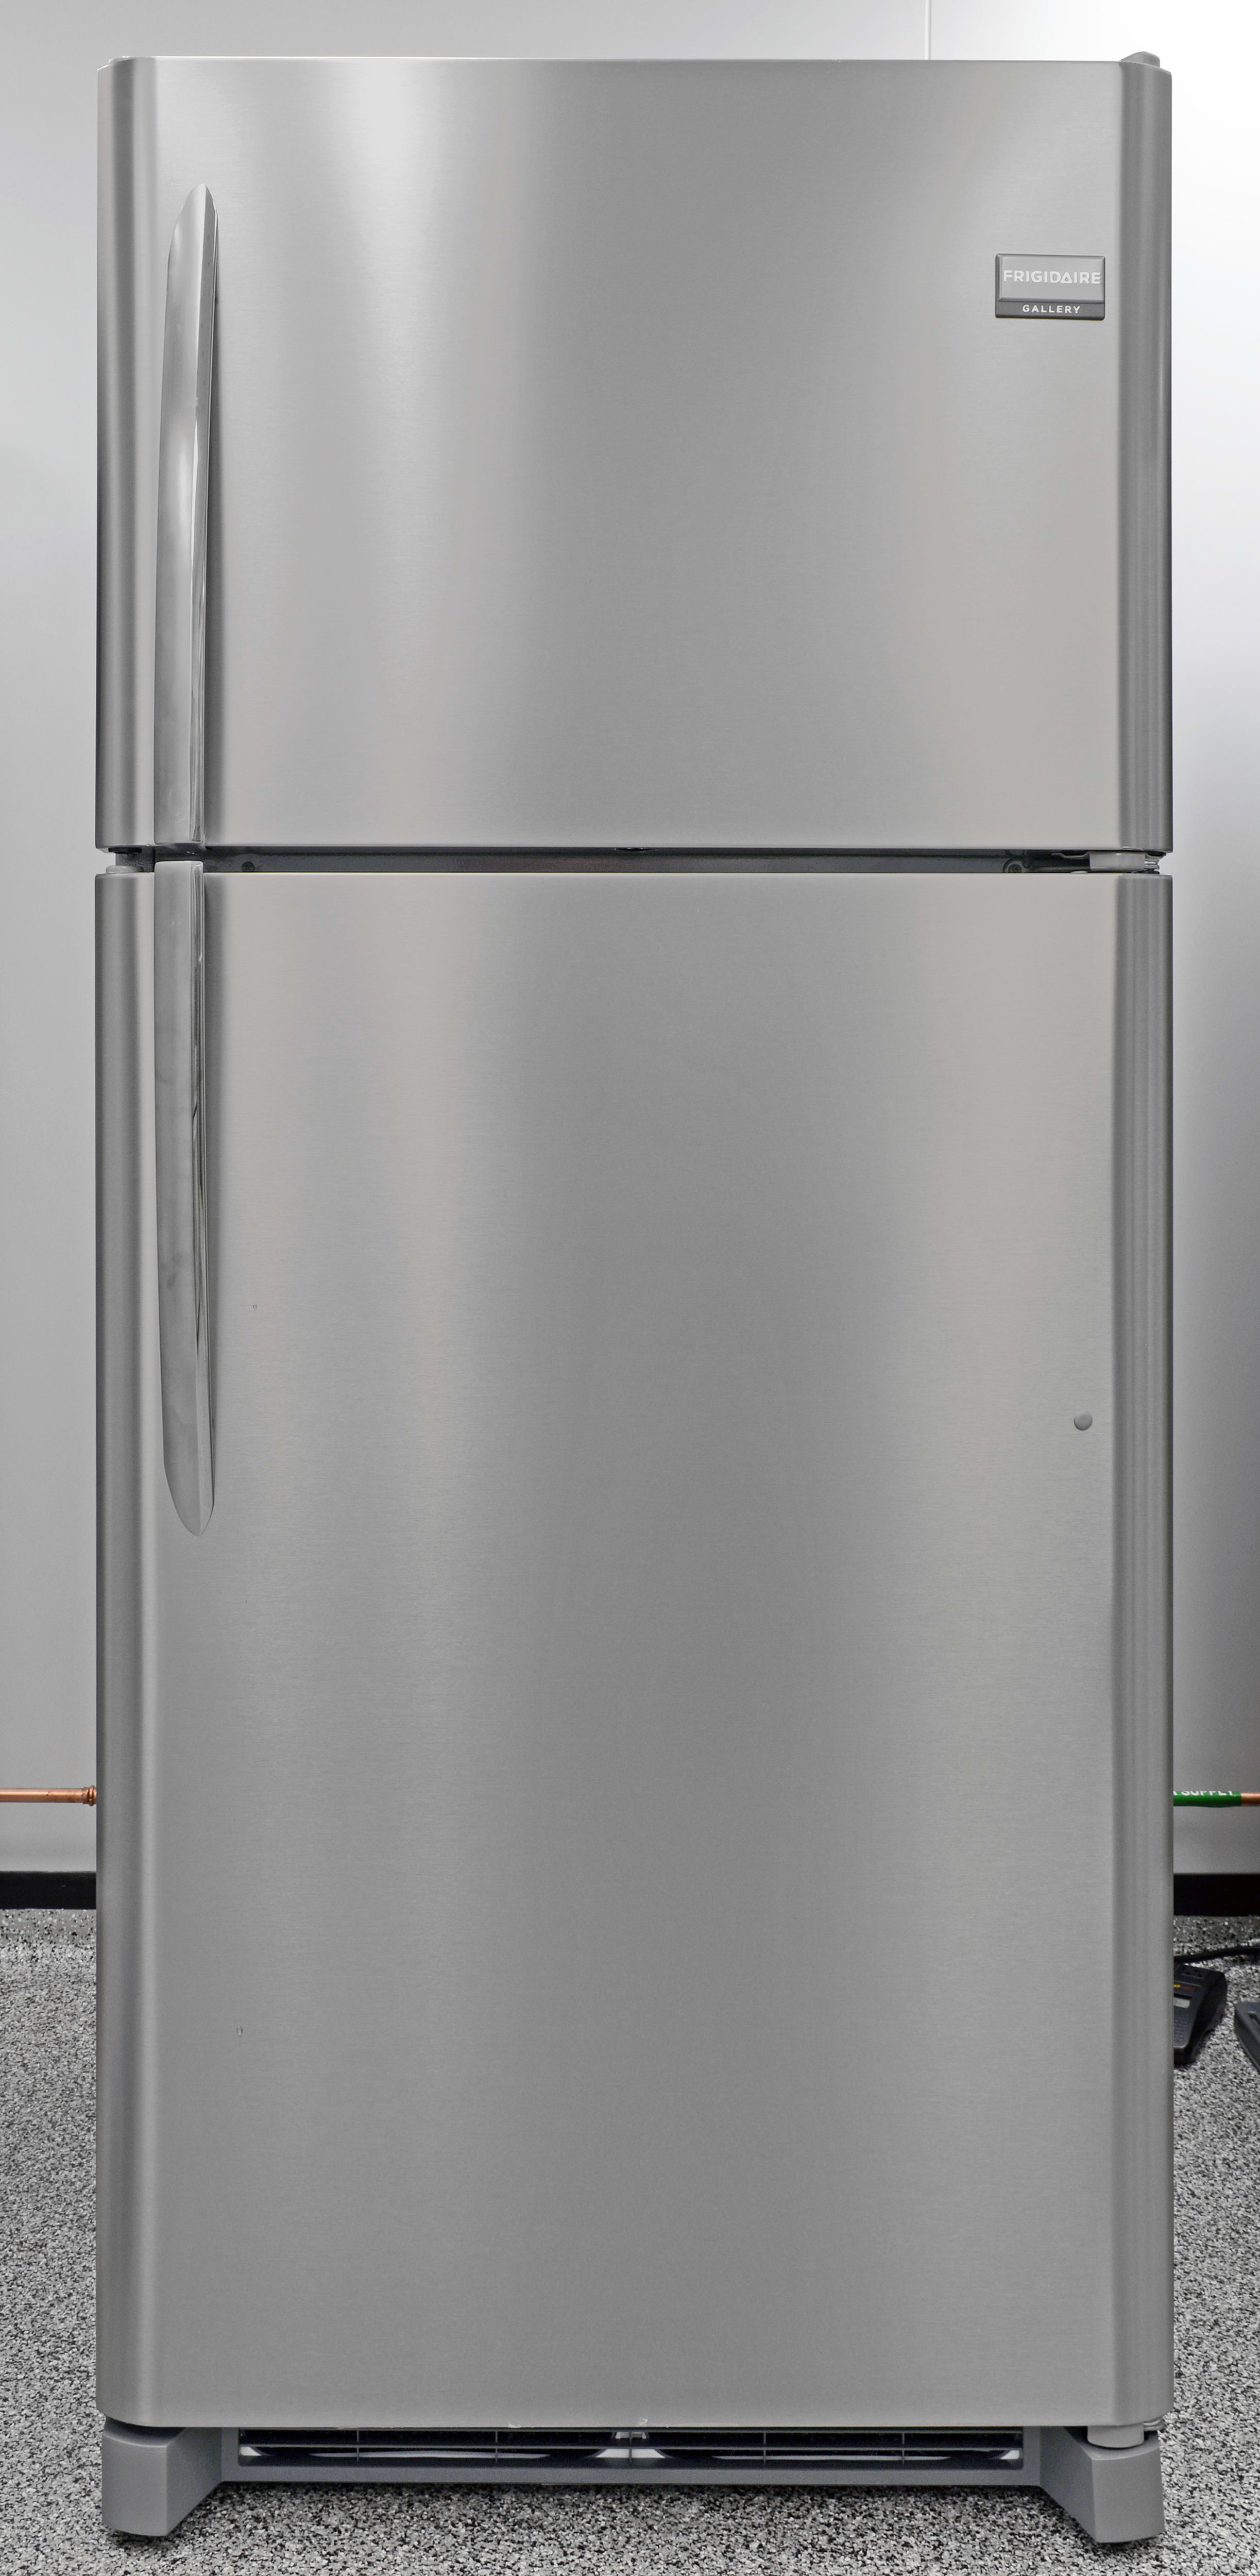 The Frigidaire Gallery FGHT2046QF is a straightforward fridge with strong performance and high-end design.